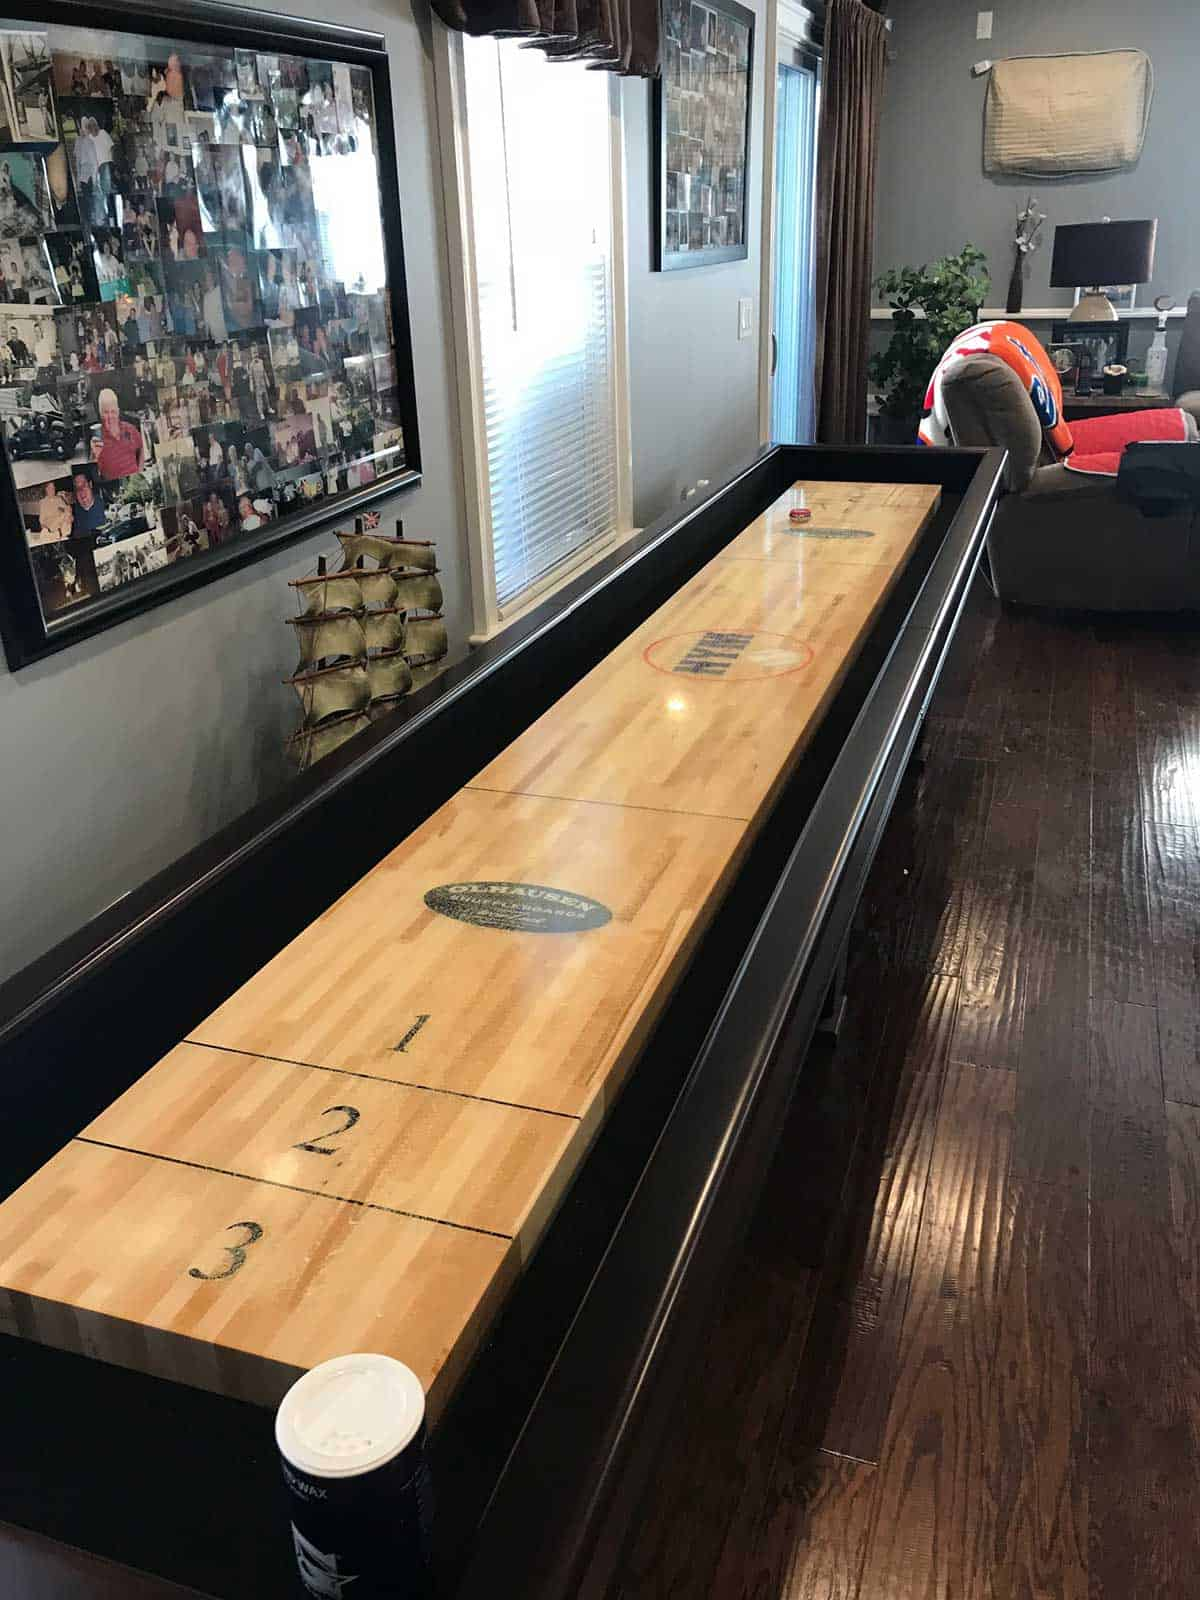 engine cozy cool sale image beige design ideas decor tables wooden furniture simple for plan shuffleboard best table floor interior tile and wall with your plans